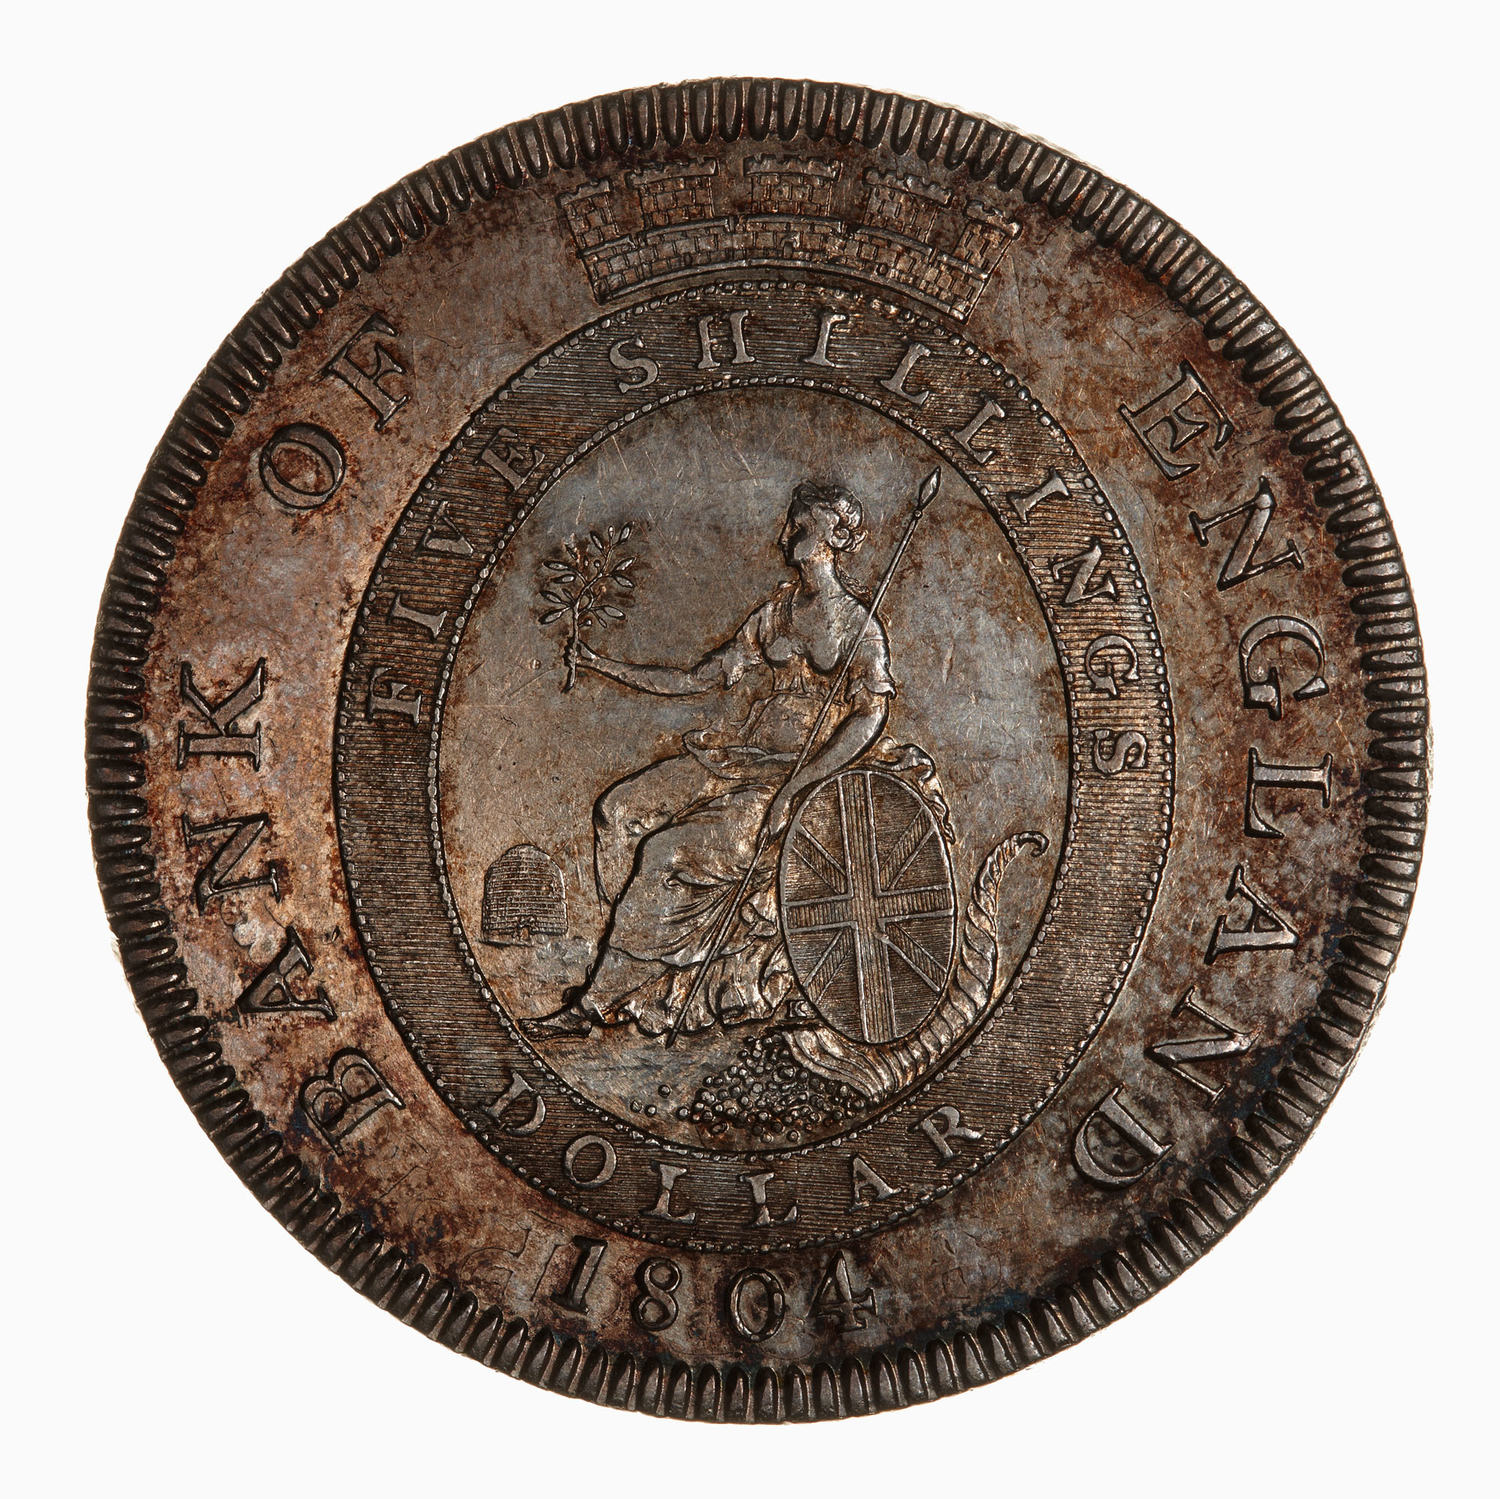 Five Shillings 1804: Photo Coin - Emergency Bank of England Dollar, George III, Great Britain, 1804-1811